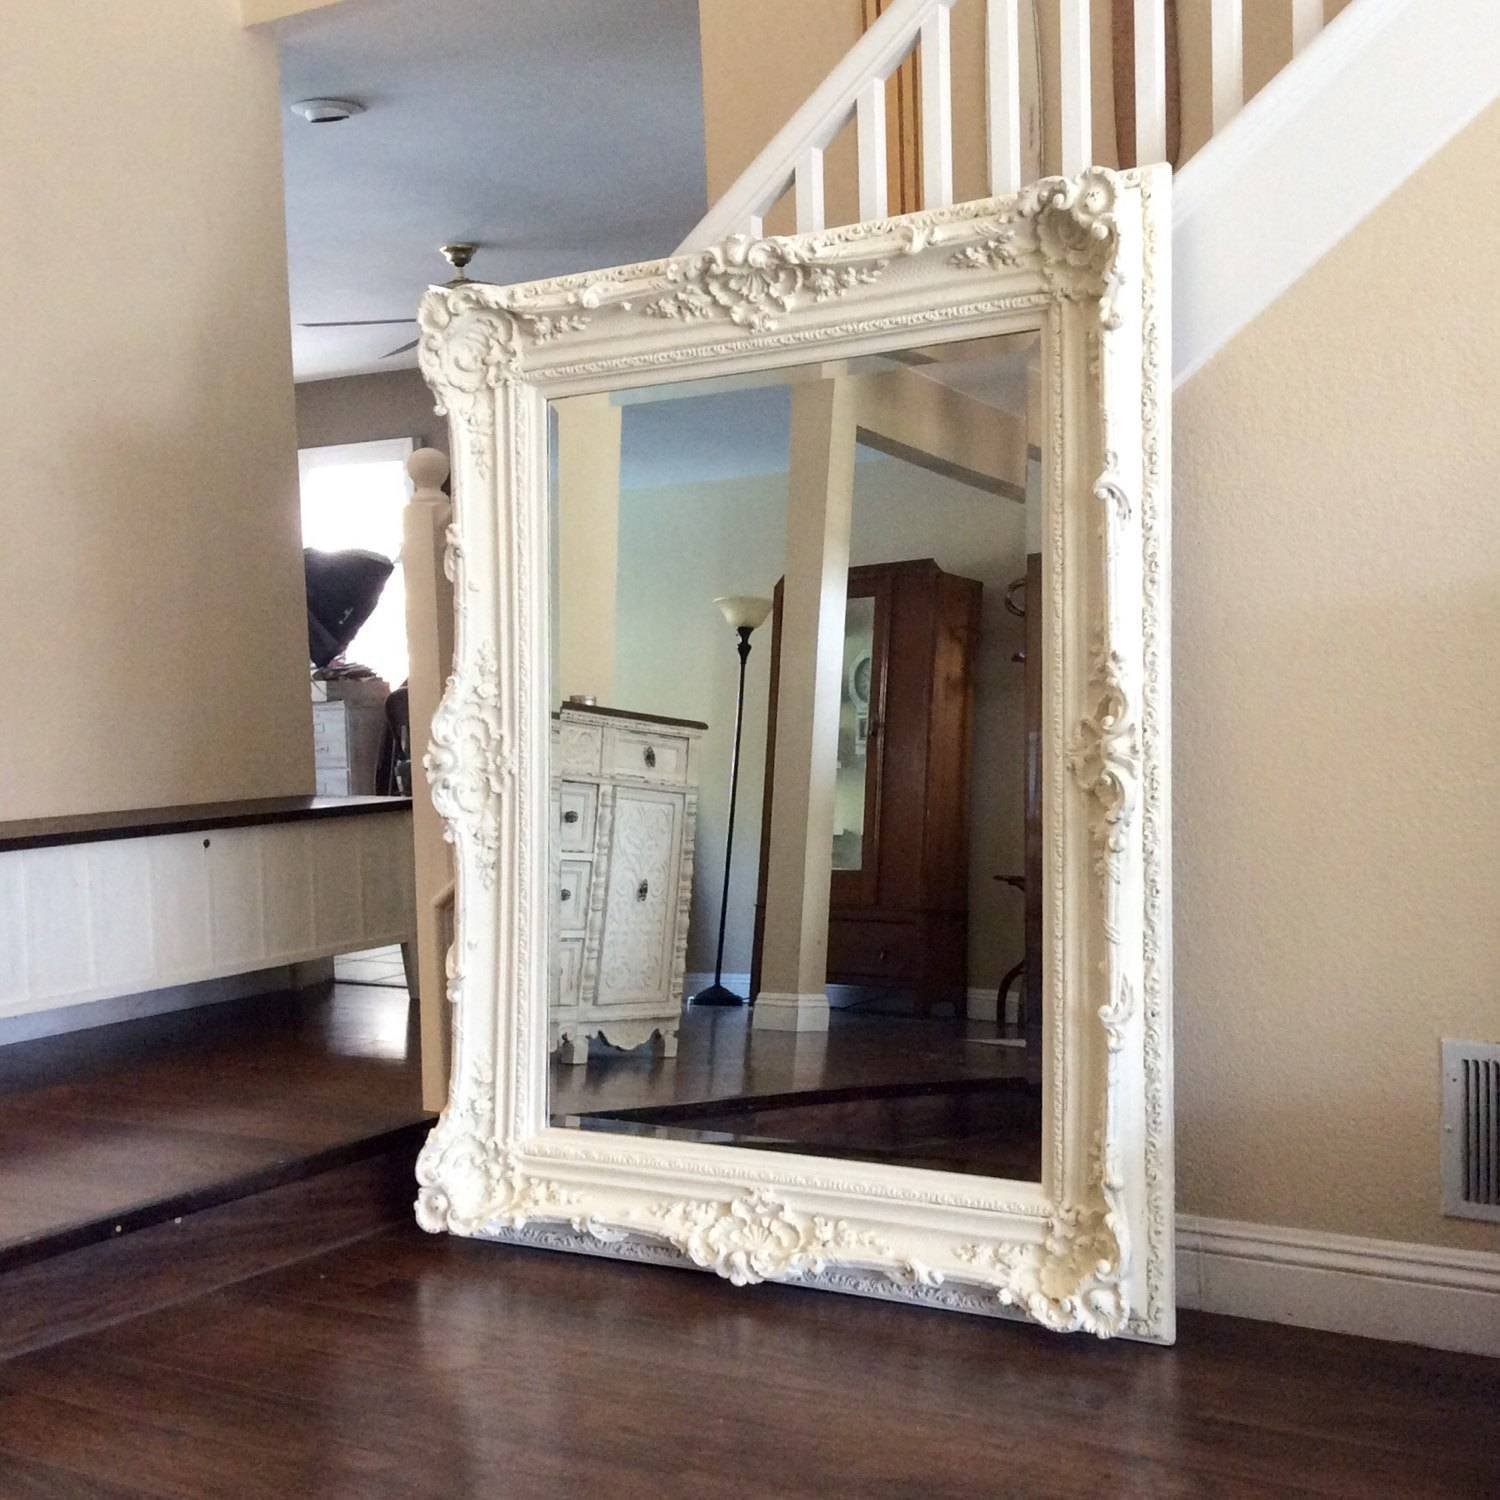 Wall Mirrors For Sale 28 Stunning Decor With Large Gold Very for Large Ornate Wall Mirrors (Image 14 of 15)